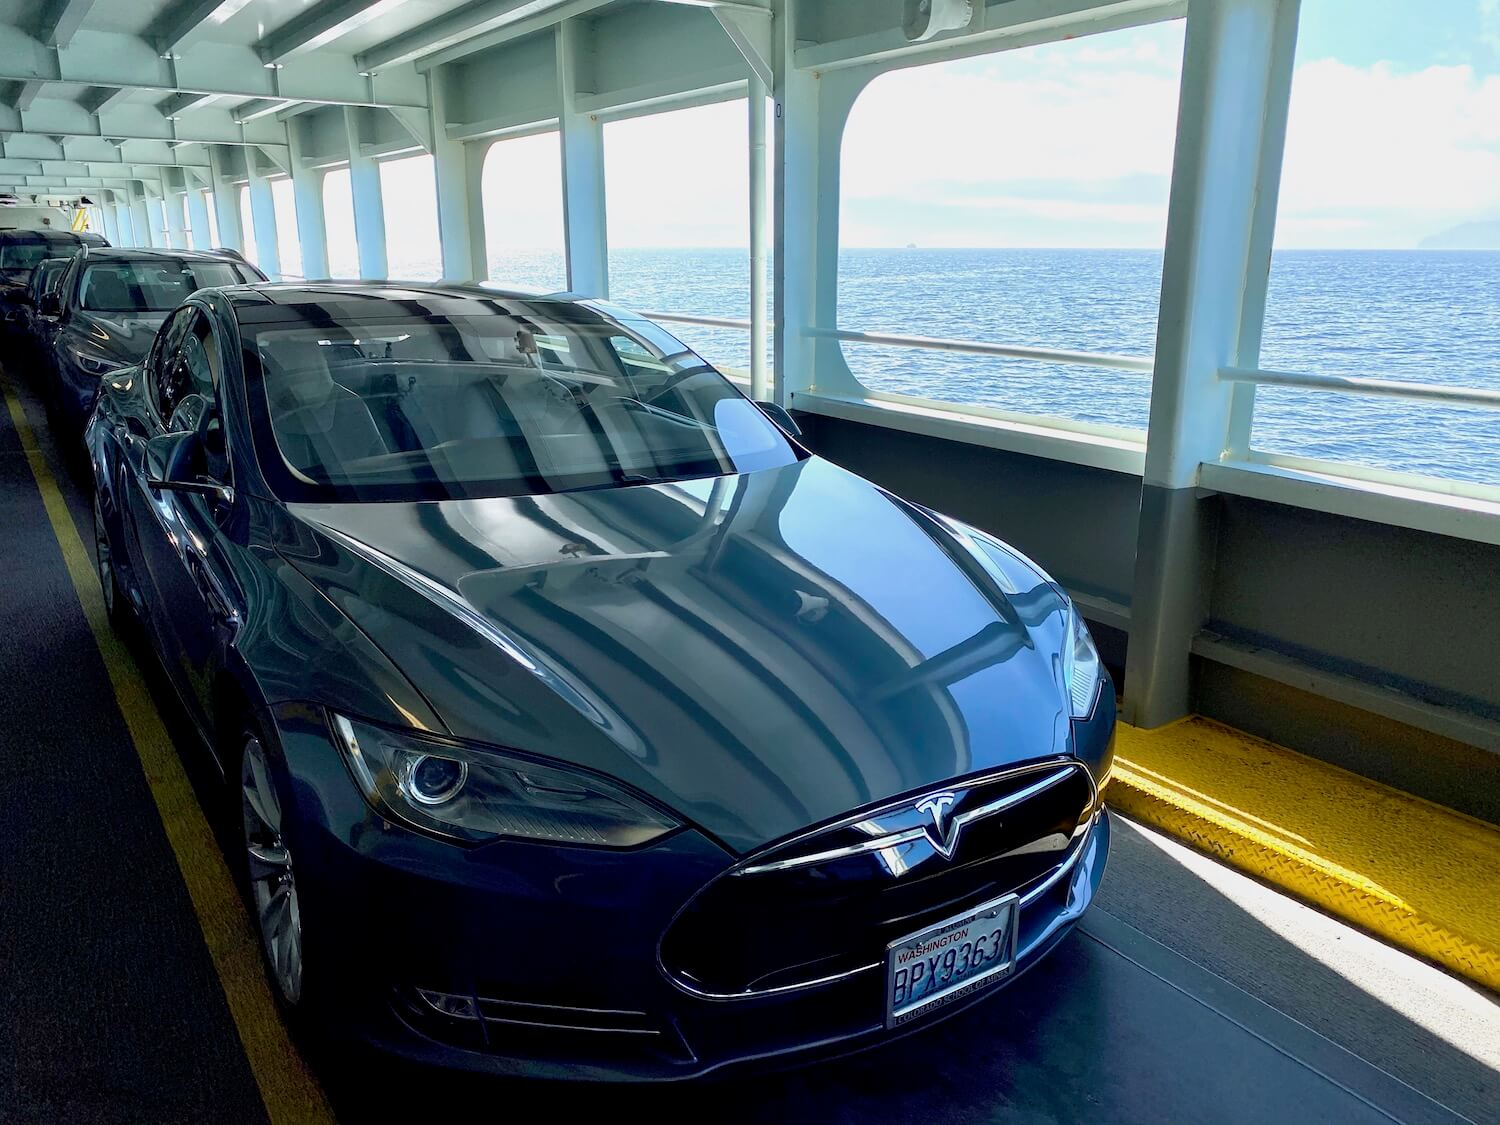 A Tesla Model S sedan sits on the deck of a Washington State Ferry with open Puget Sound waters in the distance against a cloudy sky. The vehicle is a metallic gray blue and shows the prominent Tesla hood ornament on the front. There are other cars behind the Tesla and the metal structure of the ferry are painted white on the ceiling above.